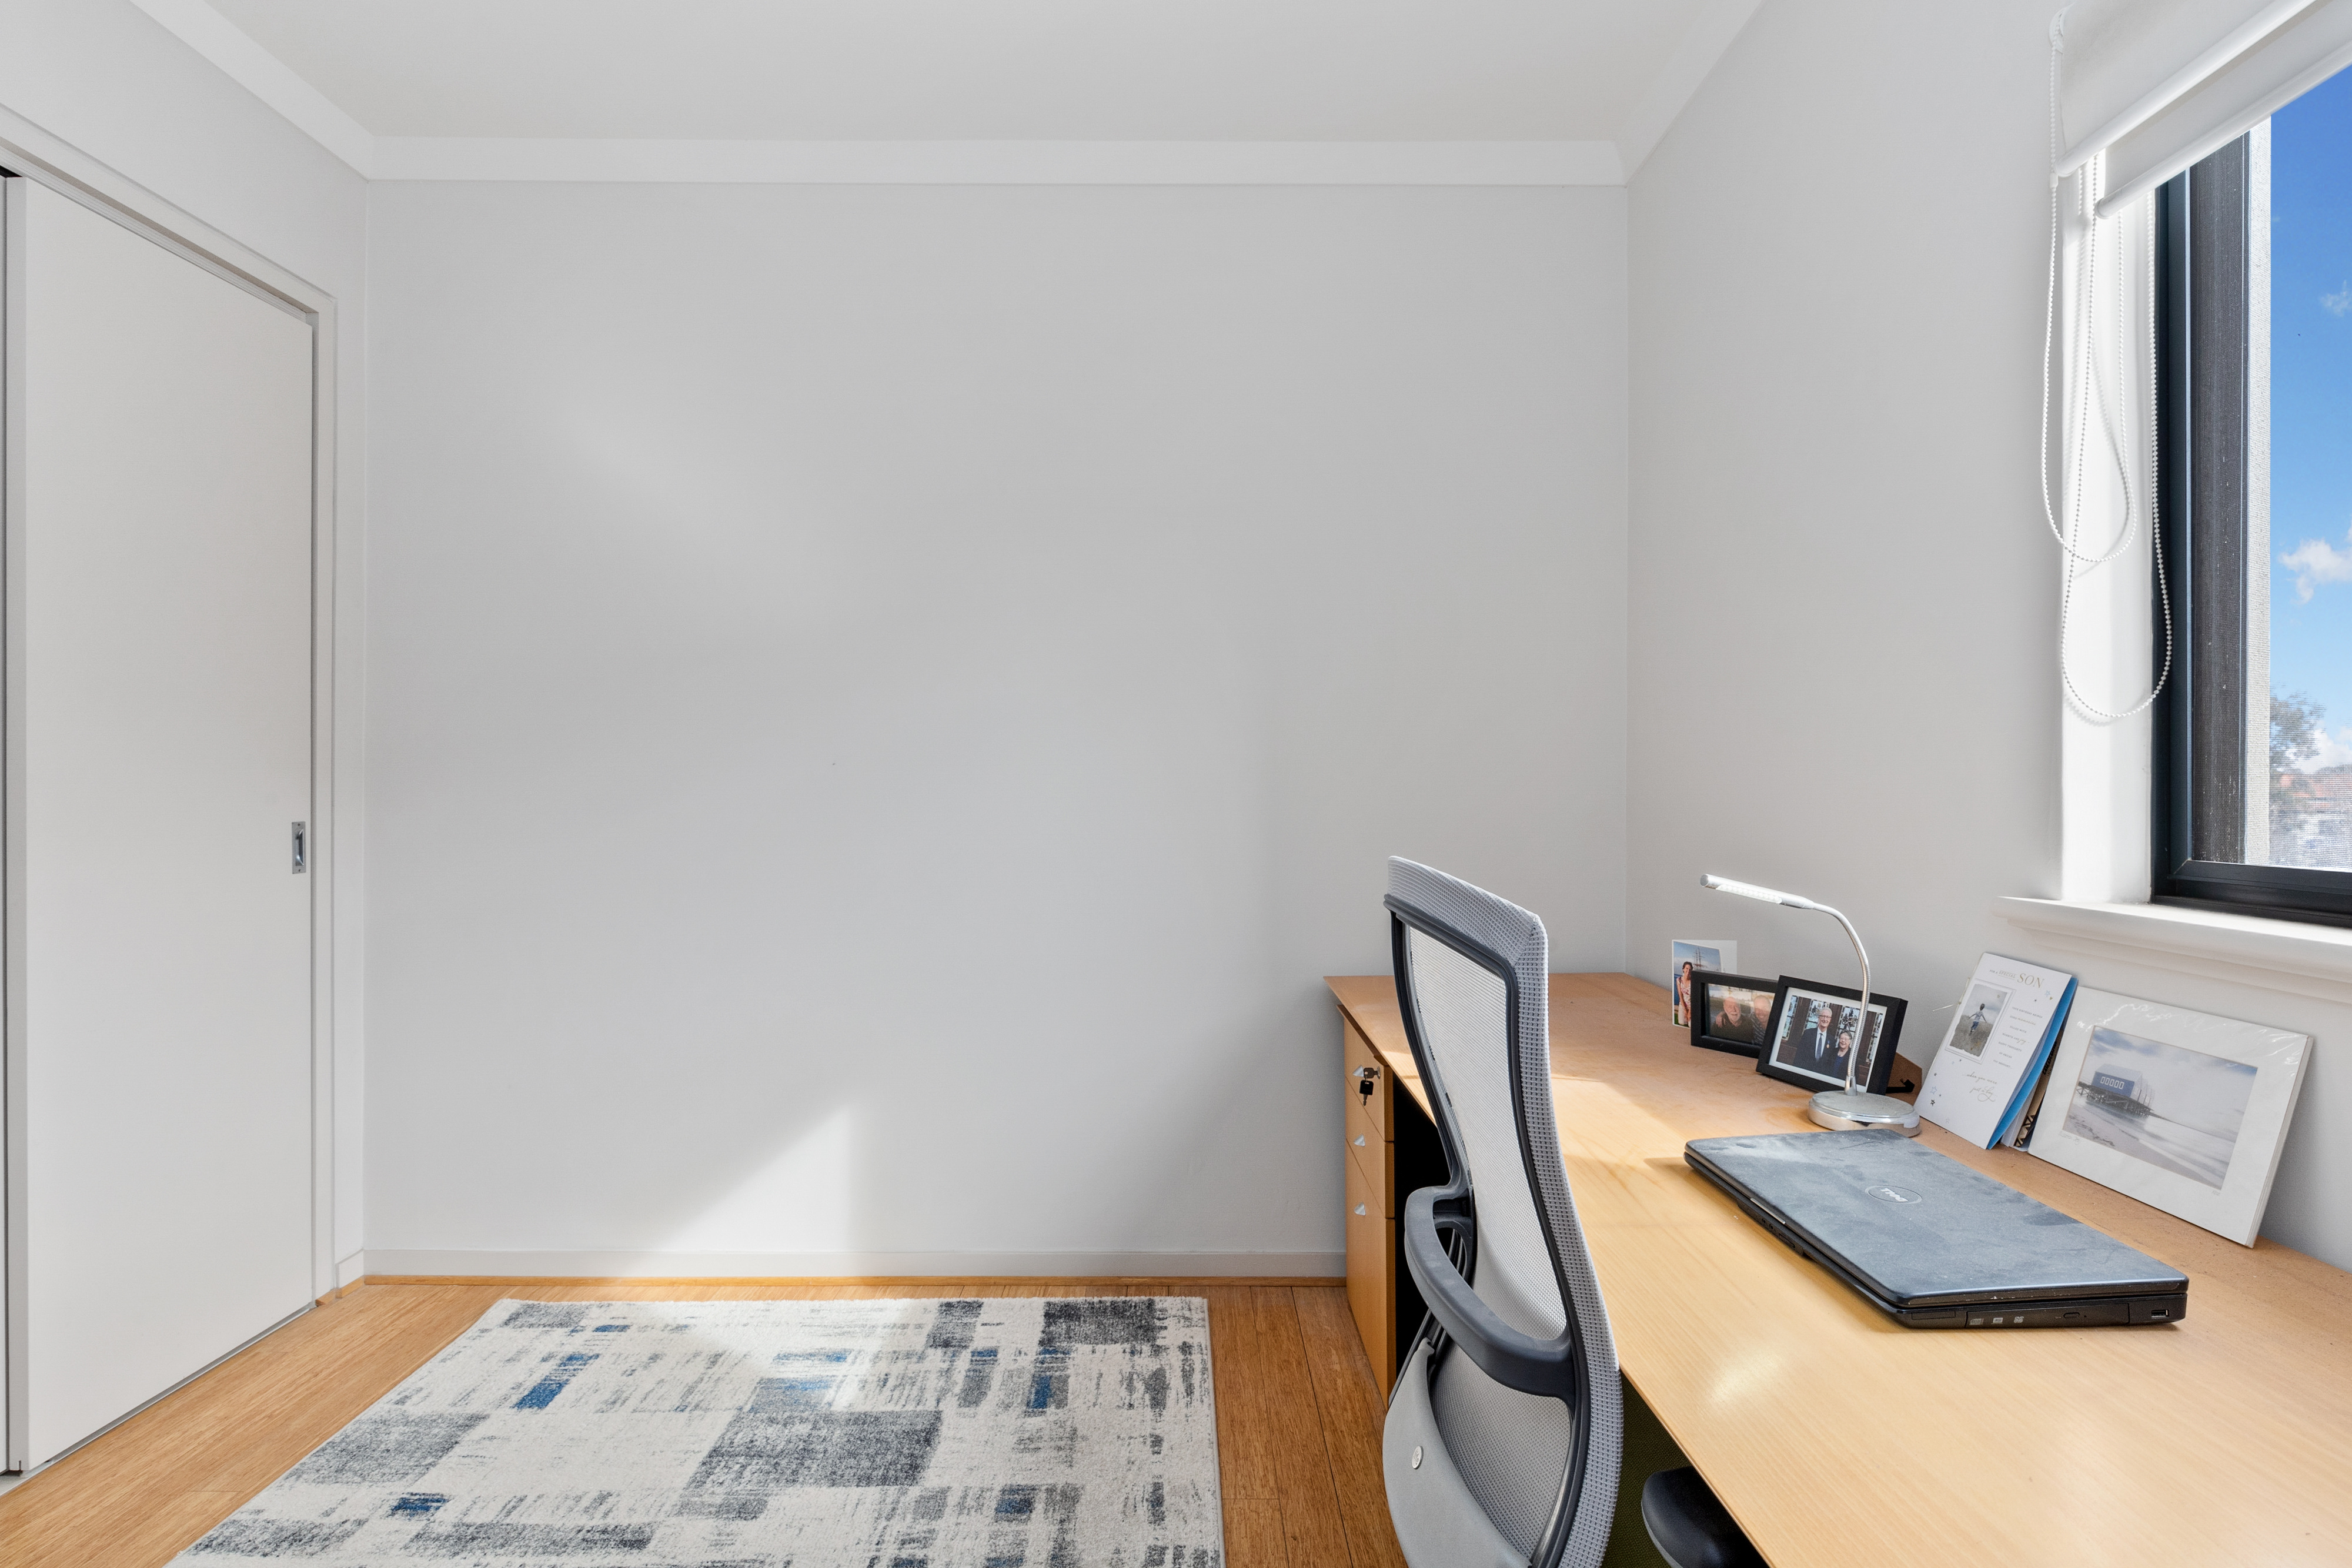 PRINT 404 48 Outram St, West Perth 04